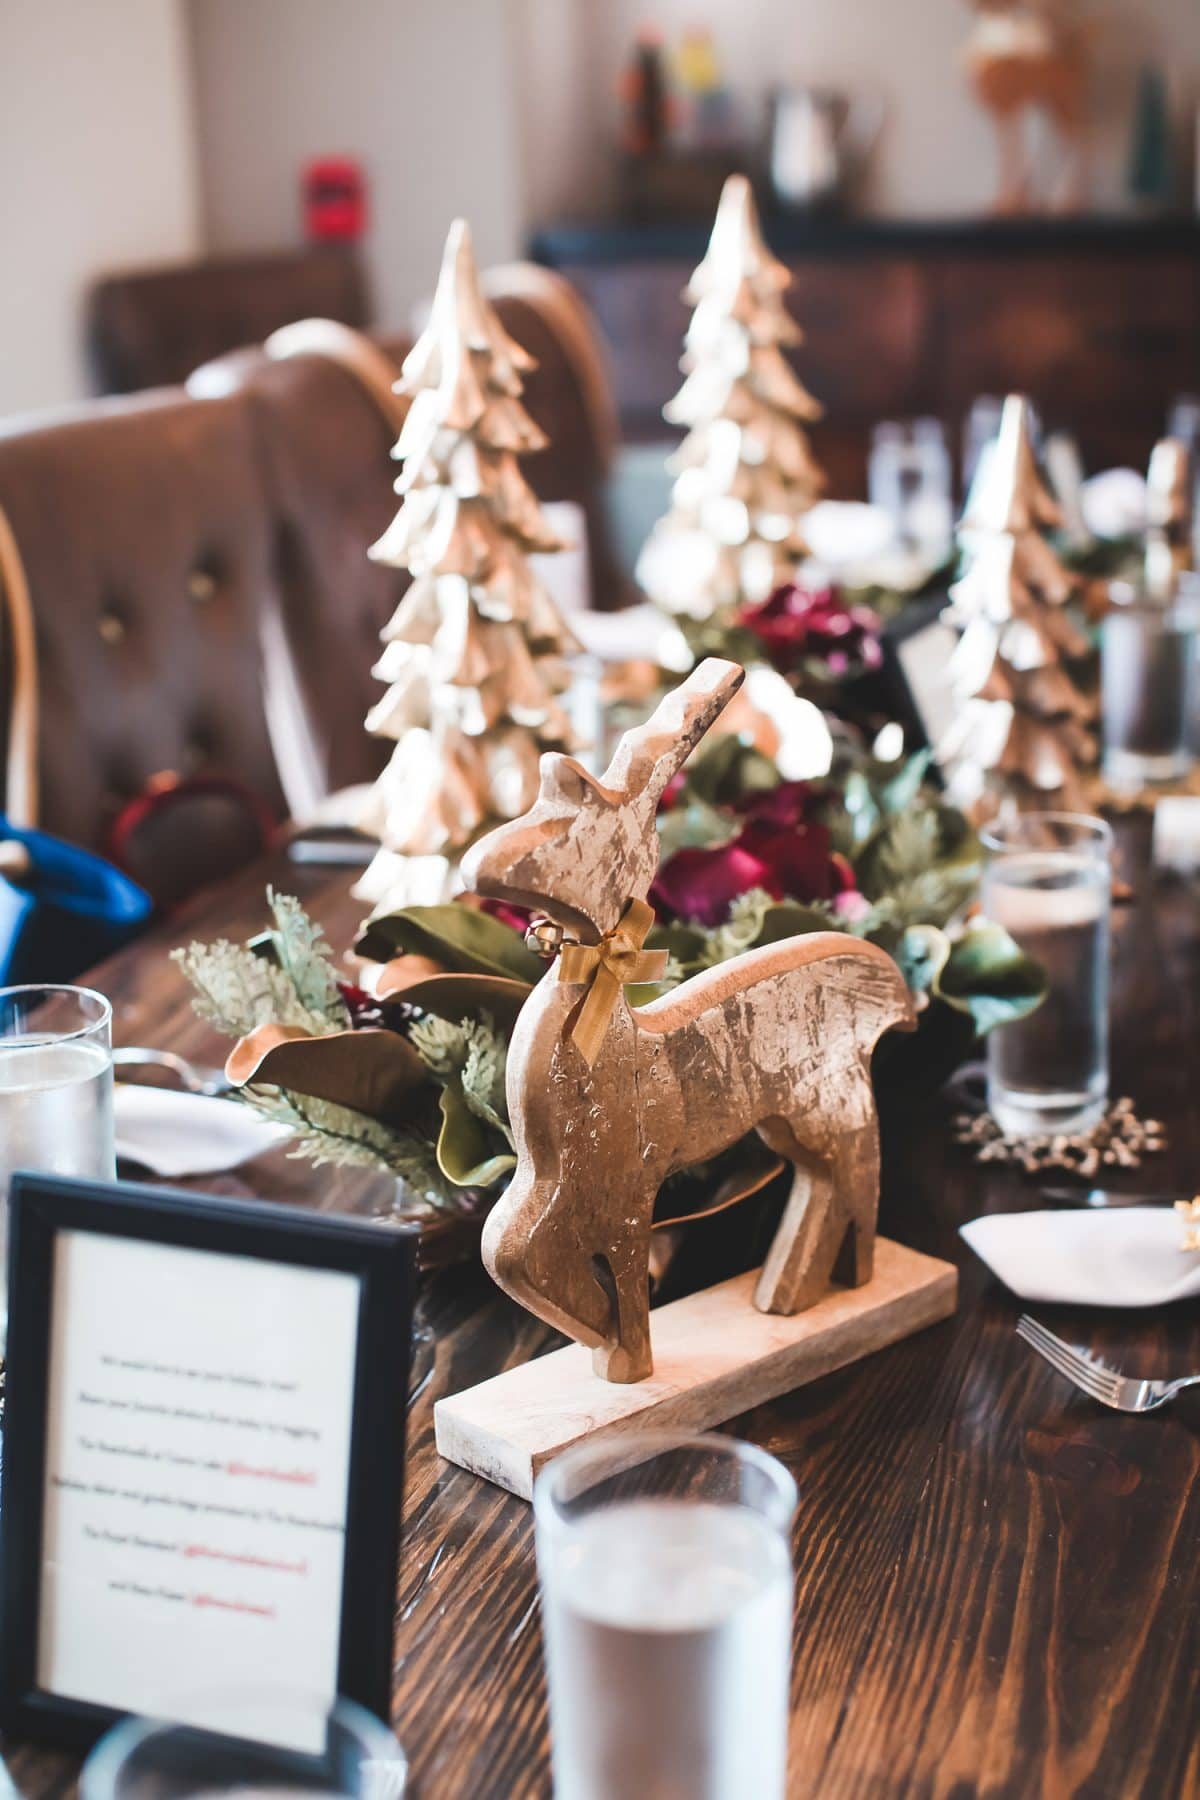 Houston blogger Meg O. on the Go shares a recap of her Houston blogger holiday lunch at Boardwalk Towne Lake in Cypress - holiday table decor by The Royal Standard